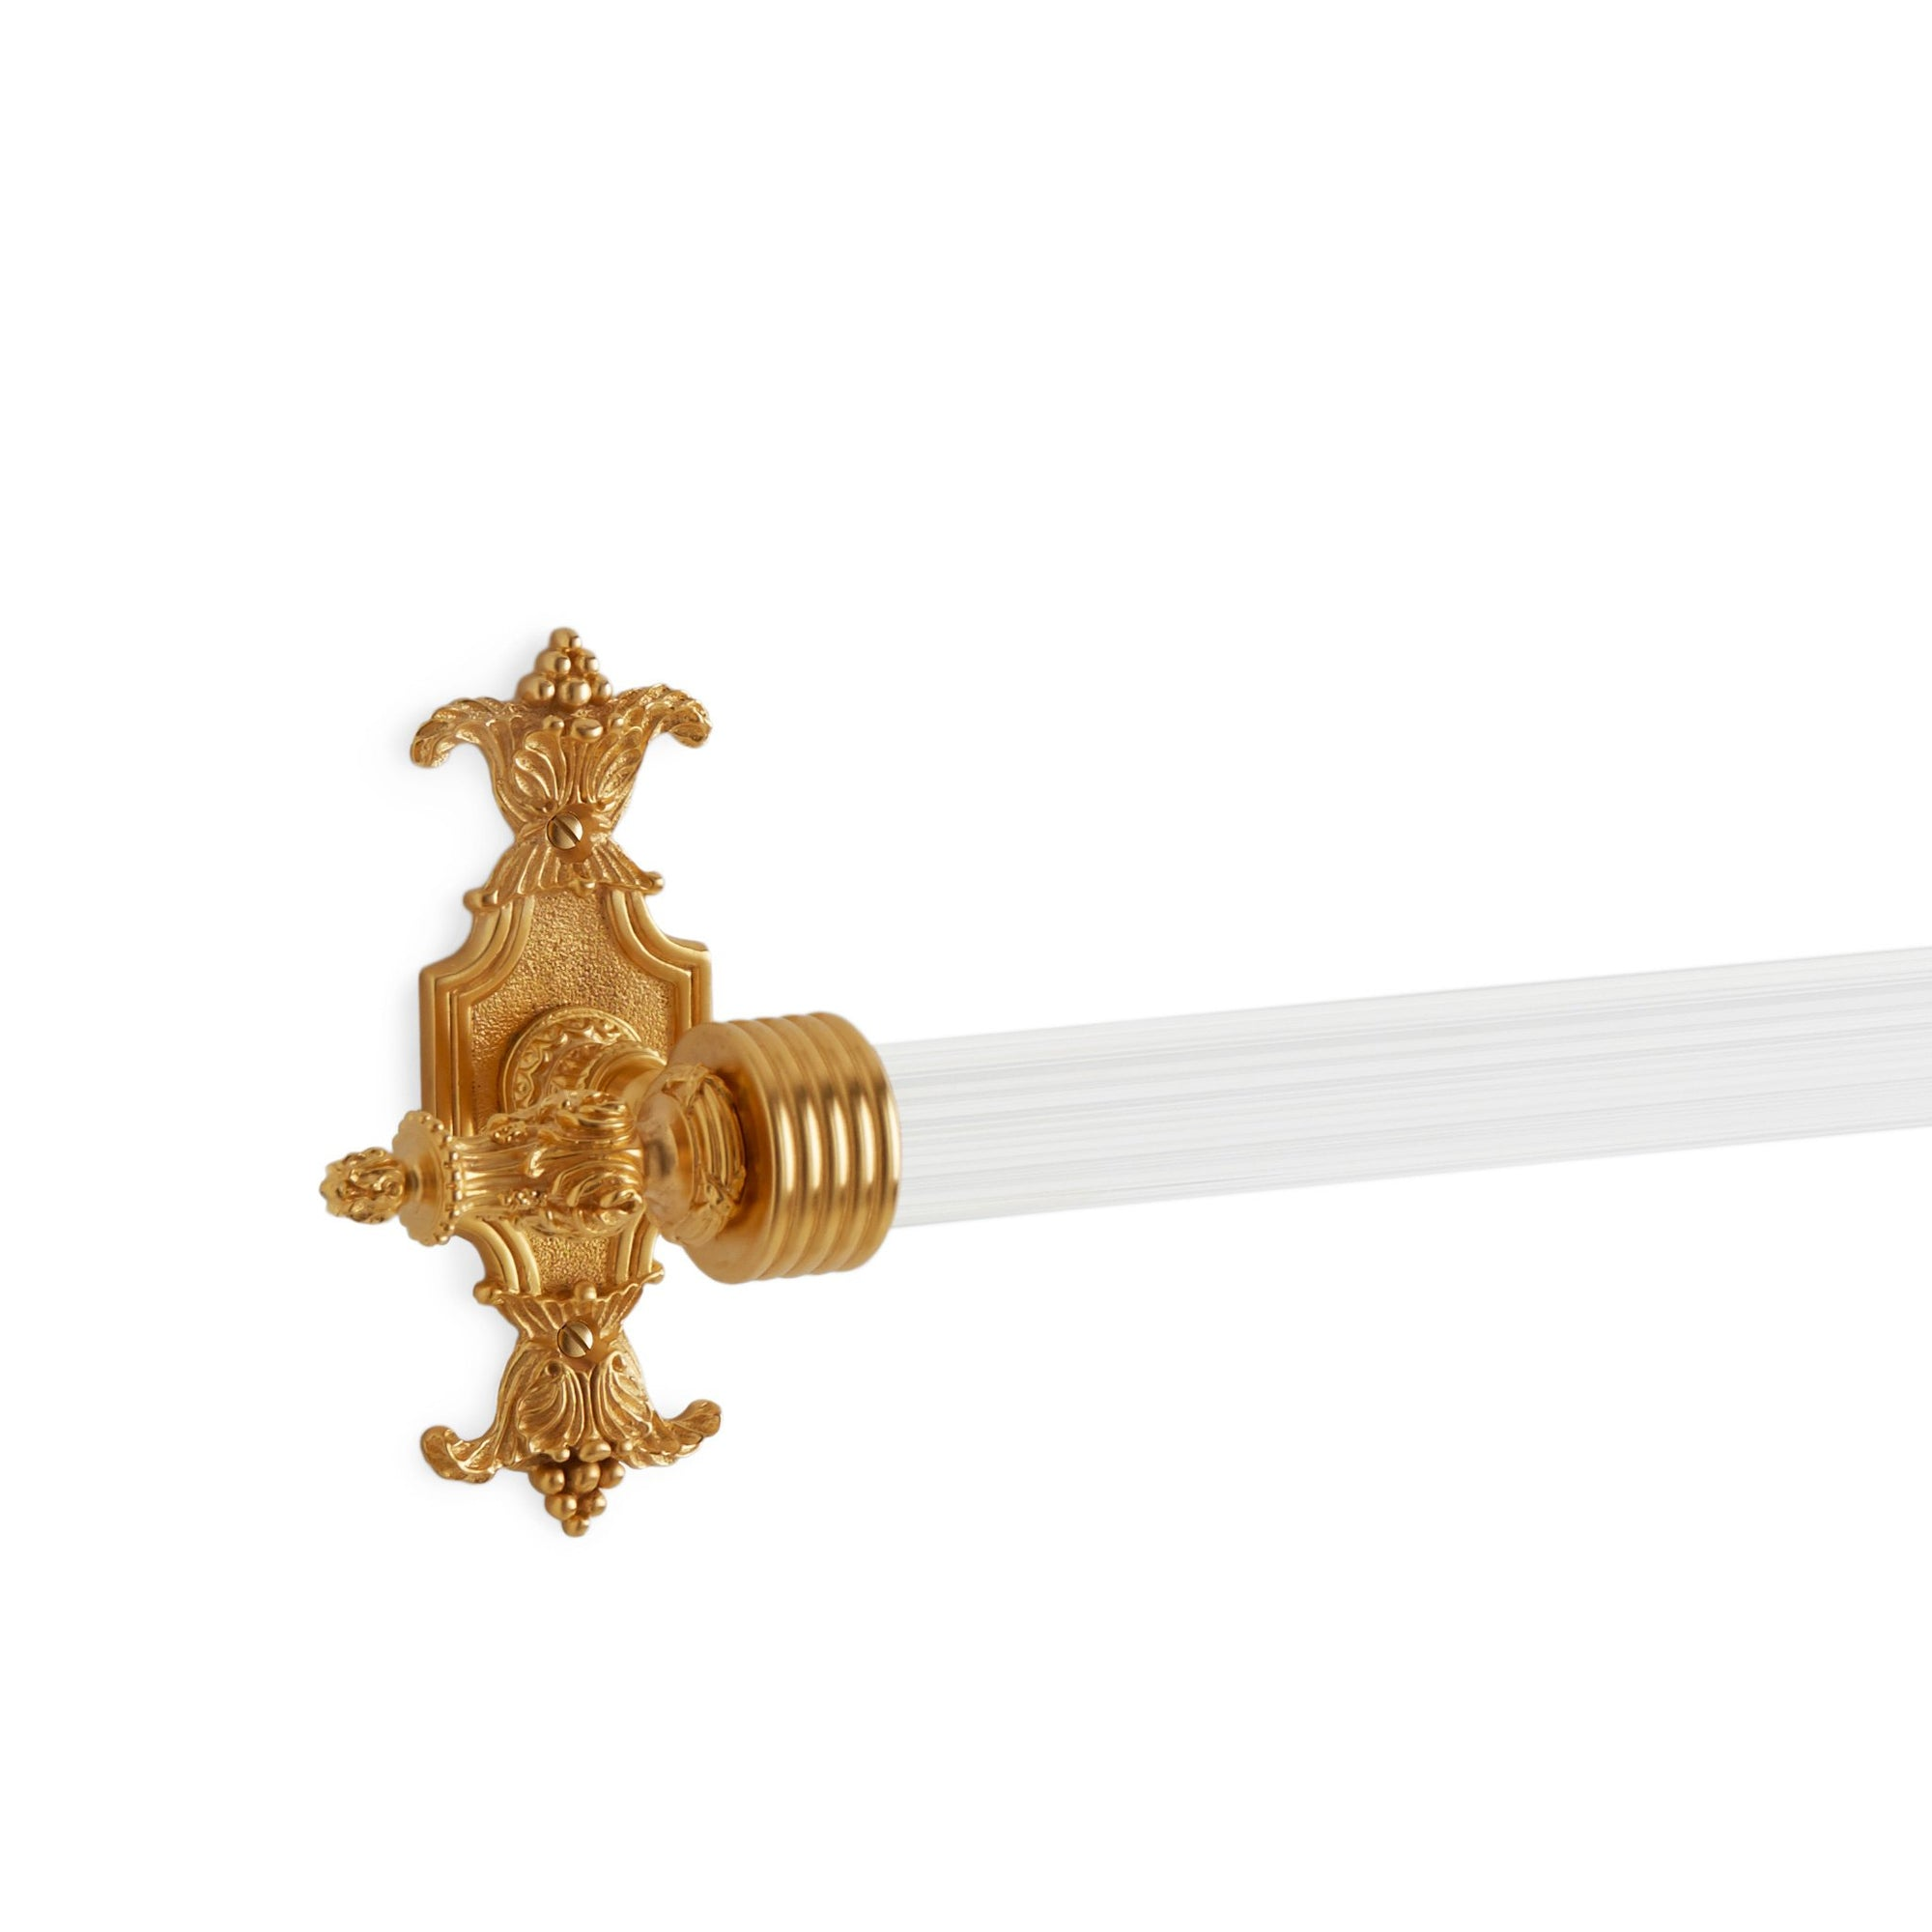 3660-30FL-GP Sherle Wagner International Louis XVI Towel Bar in Gold Plate metal finish